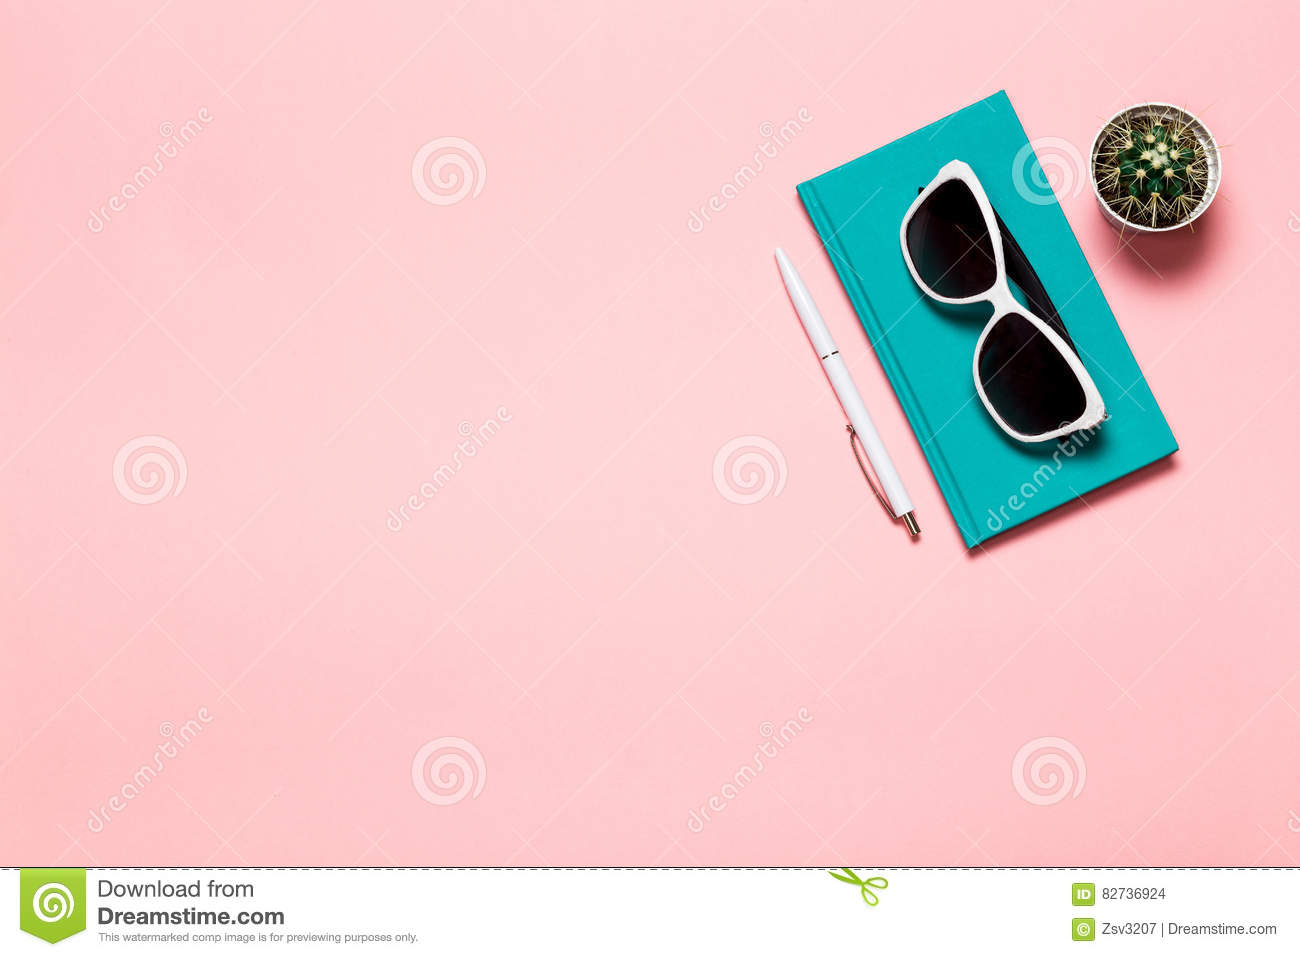 Creative flat lay photo of workspace desk with aquamarine notebook, eyeglasses, cactus with copy space pink background